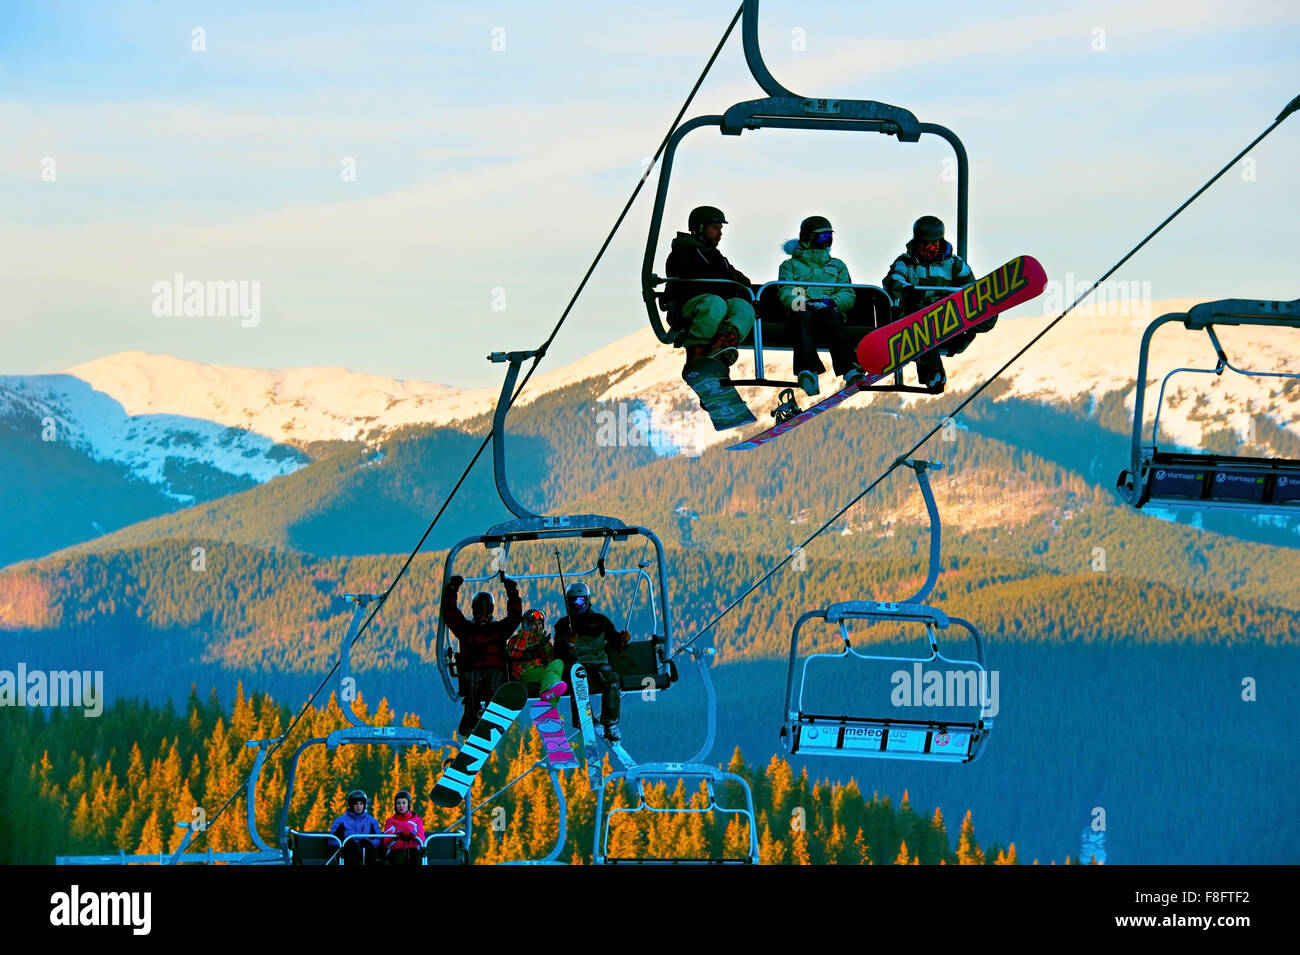 People on a ski lift in Bukovel. Bukovel is the most popular ski resort in Ukraine. - Stock Image